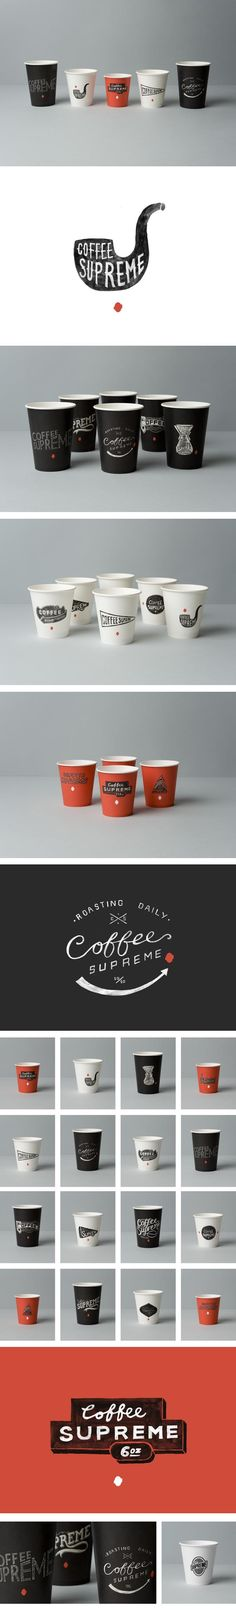 New images of our packaging work for Coffee Supreme NZ & AUS. Coffee Shop Branding, Coffee Shop Logo, Cafe Branding, Cafe Logo, Restaurant Branding, Coffee Packaging, Brand Packaging, Packaging Design, Branding Design